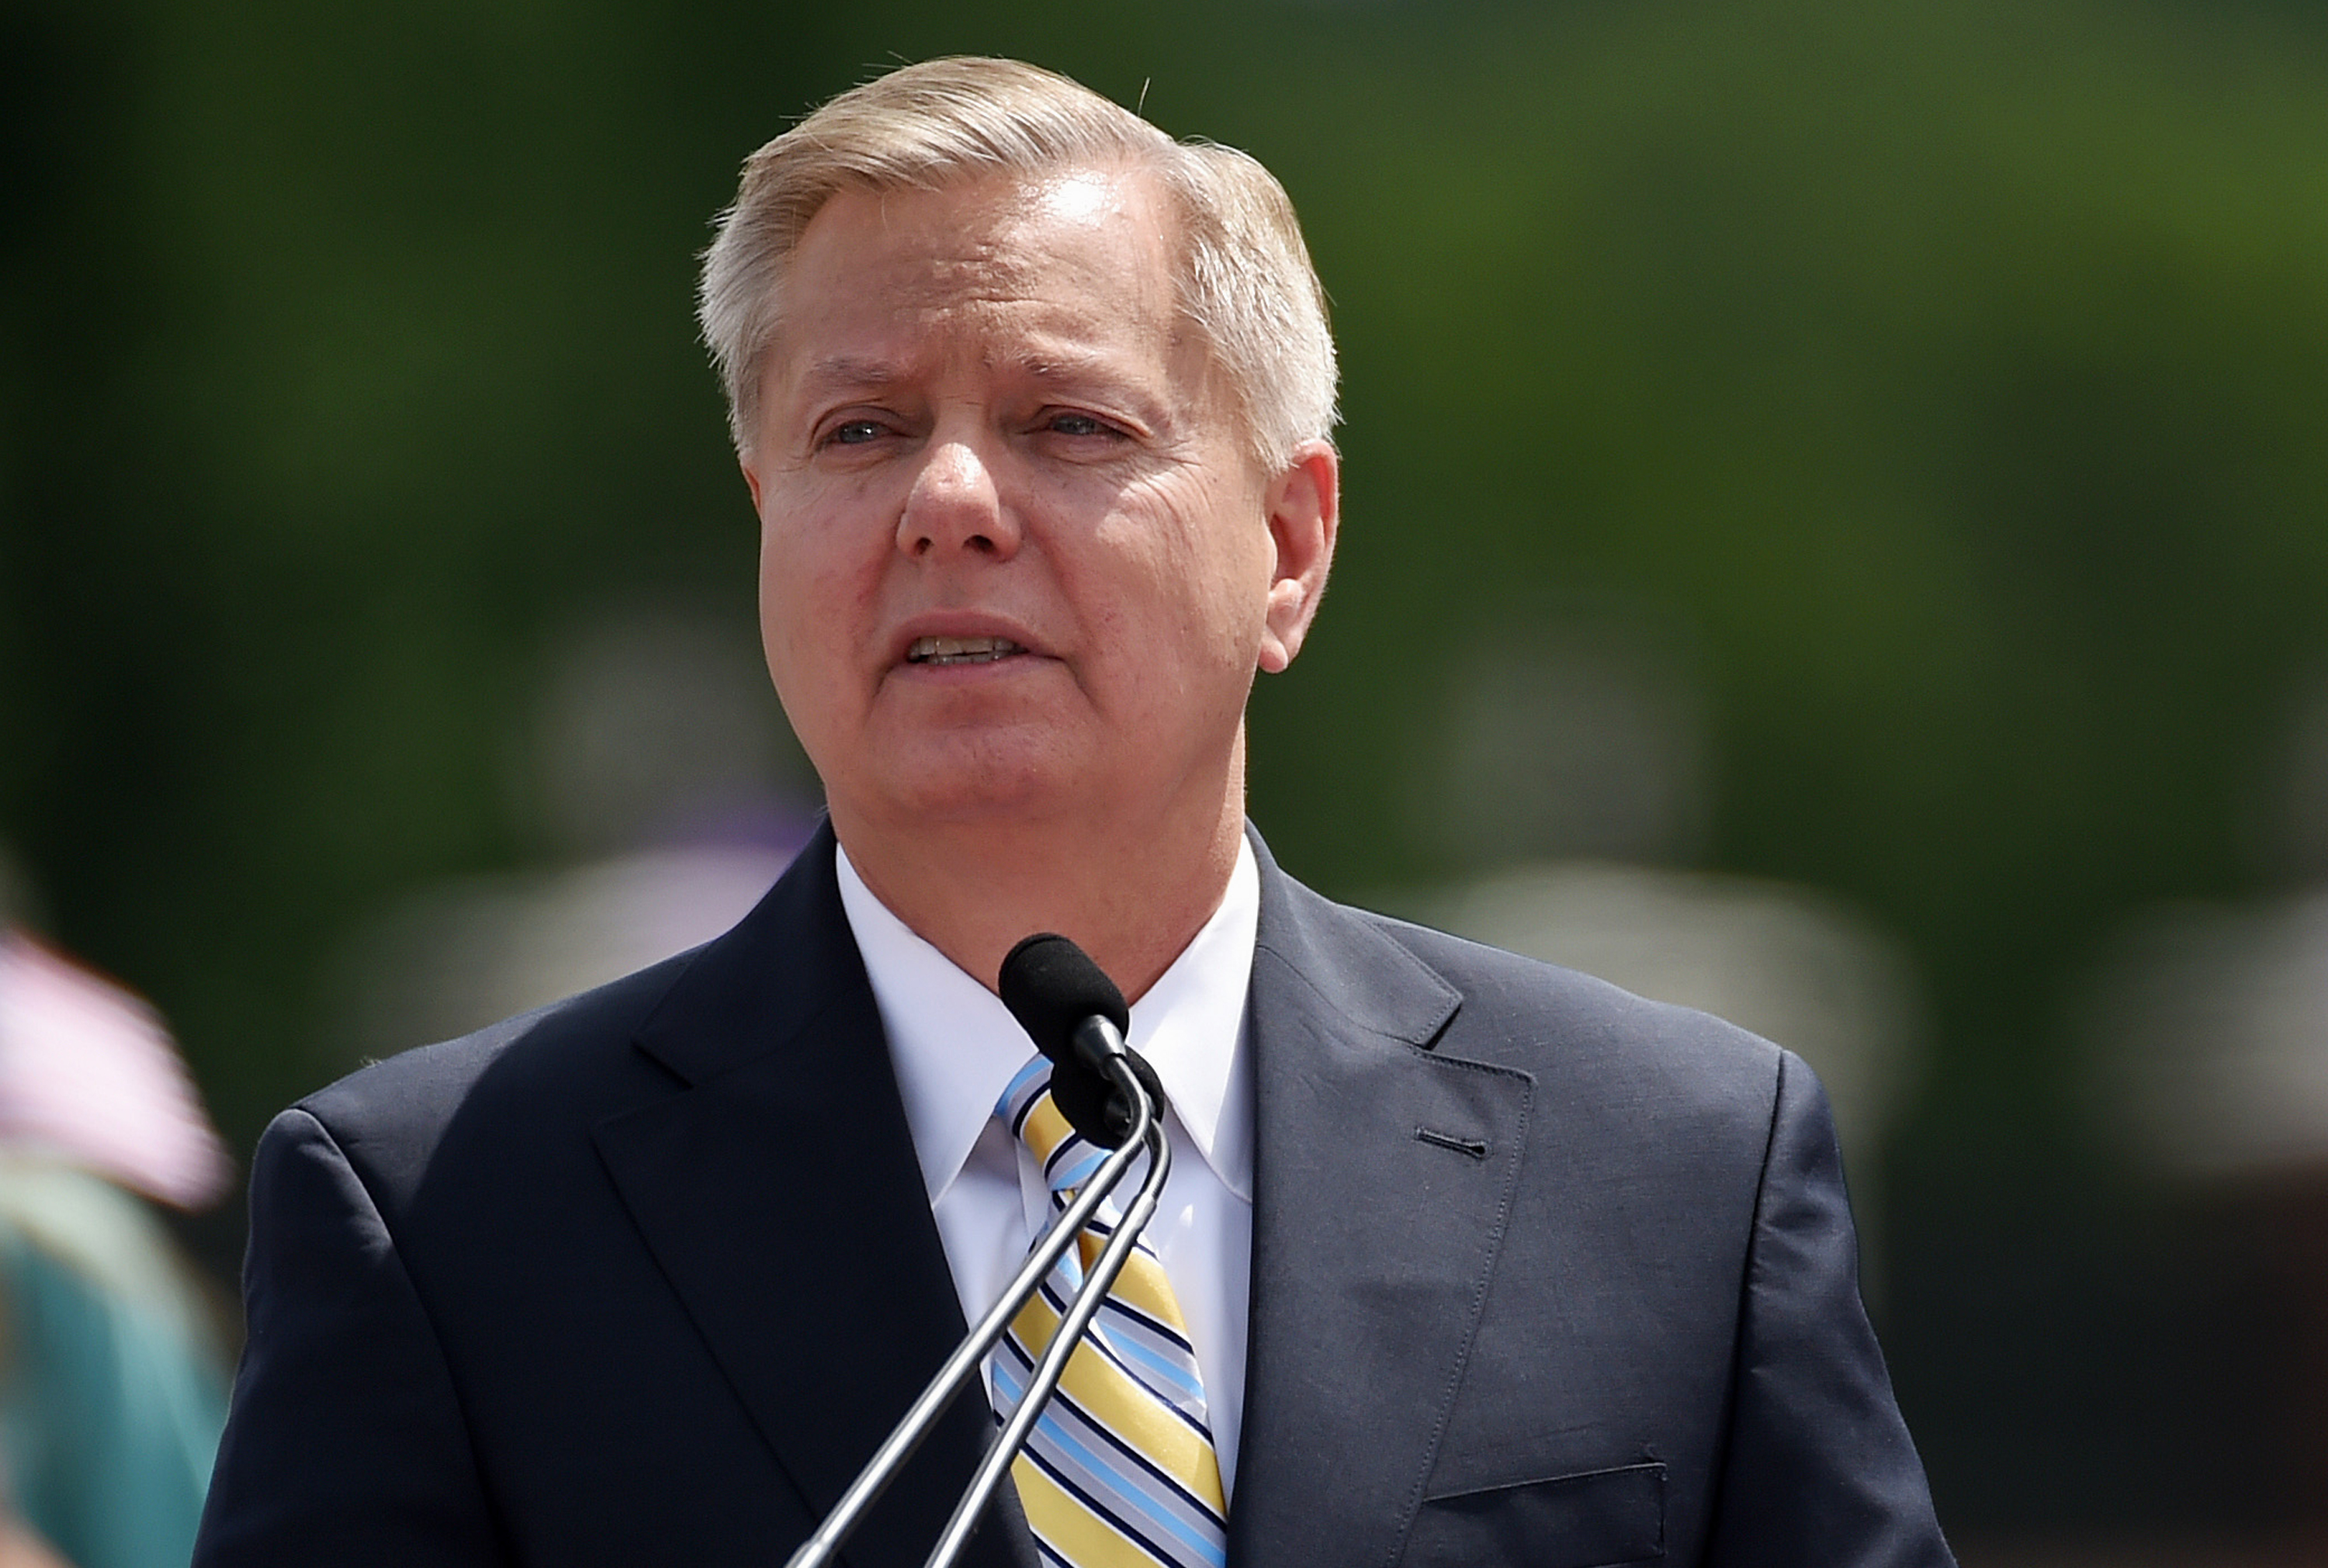 lindsey-graham-attacks-untrustworthy-hillary-clinton-with-references-to-monica-lewinsky-salon-com